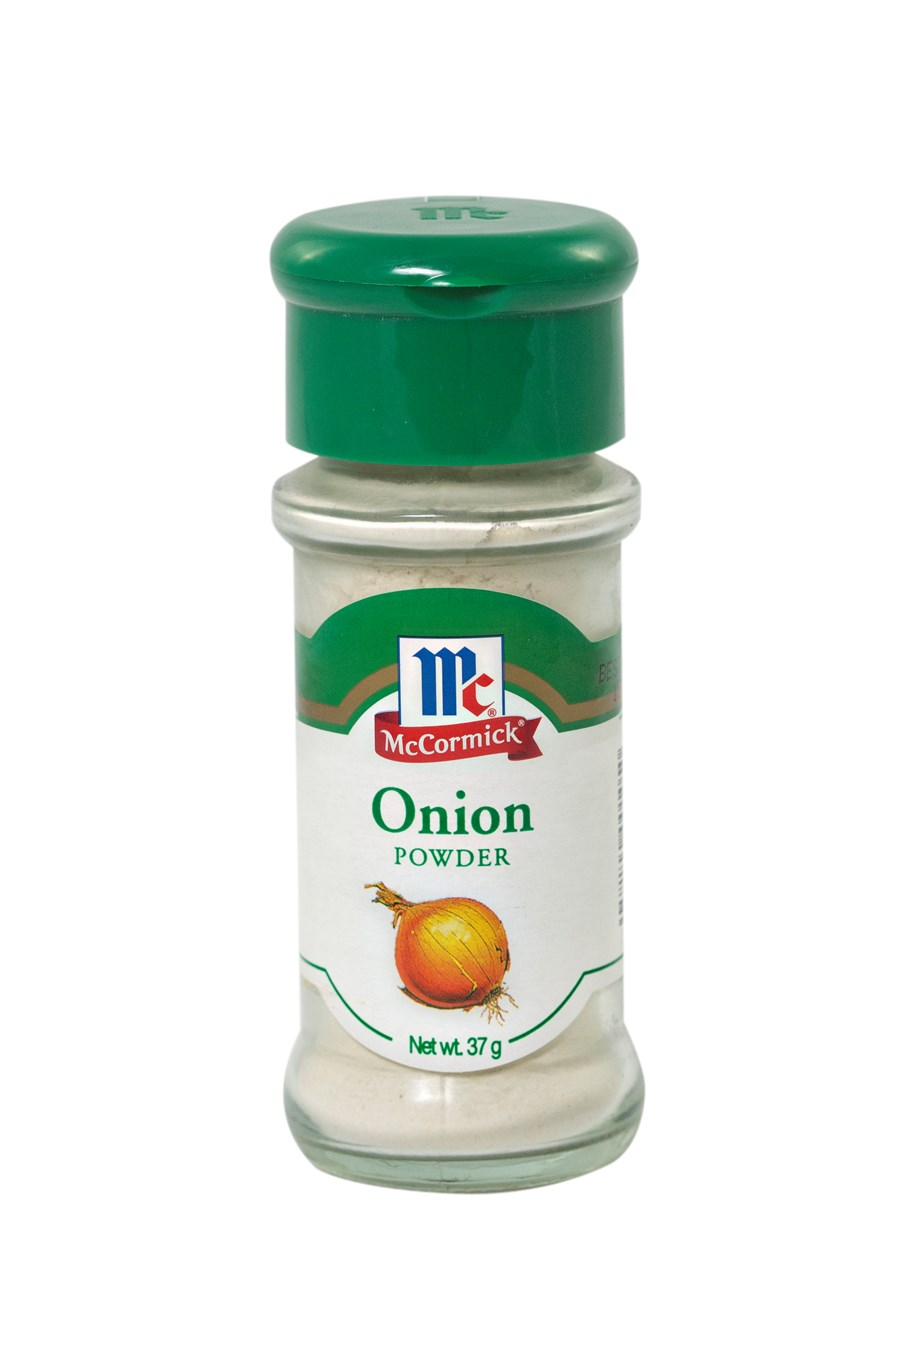 McCormick Onion Powder 37g